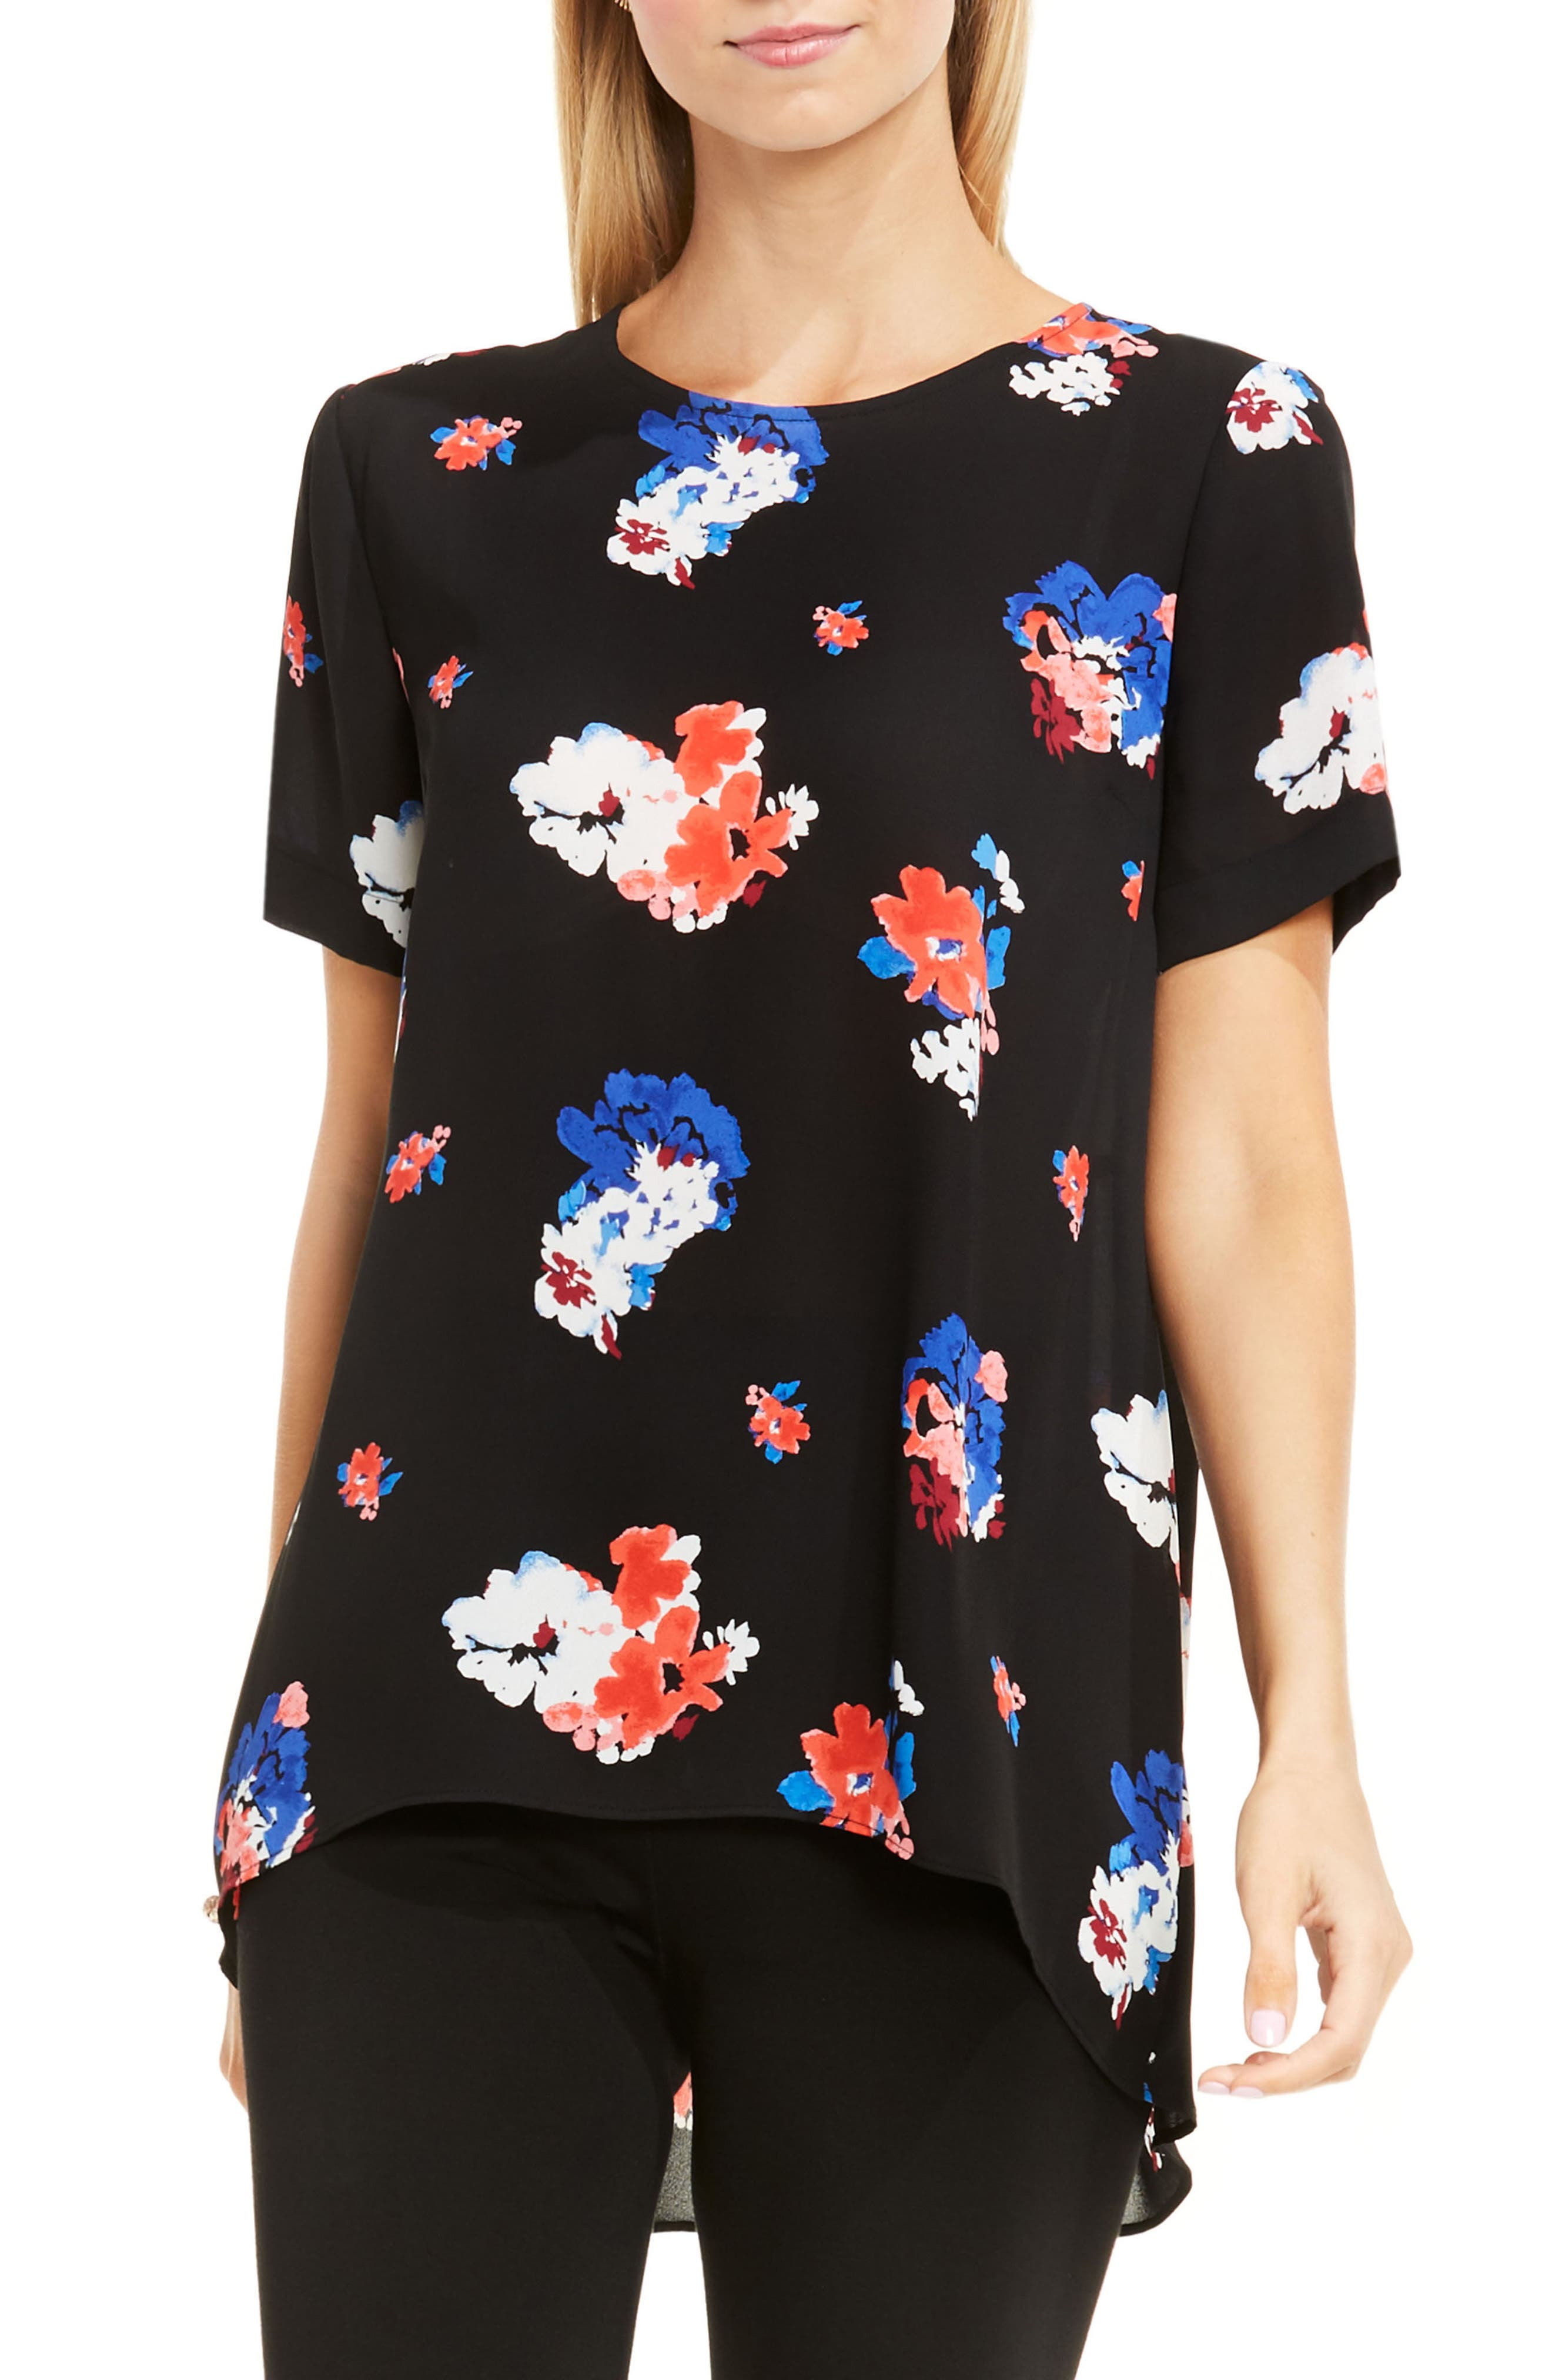 Alternate Image 1 Selected - Vince Camuto High/Low Floral Blouse